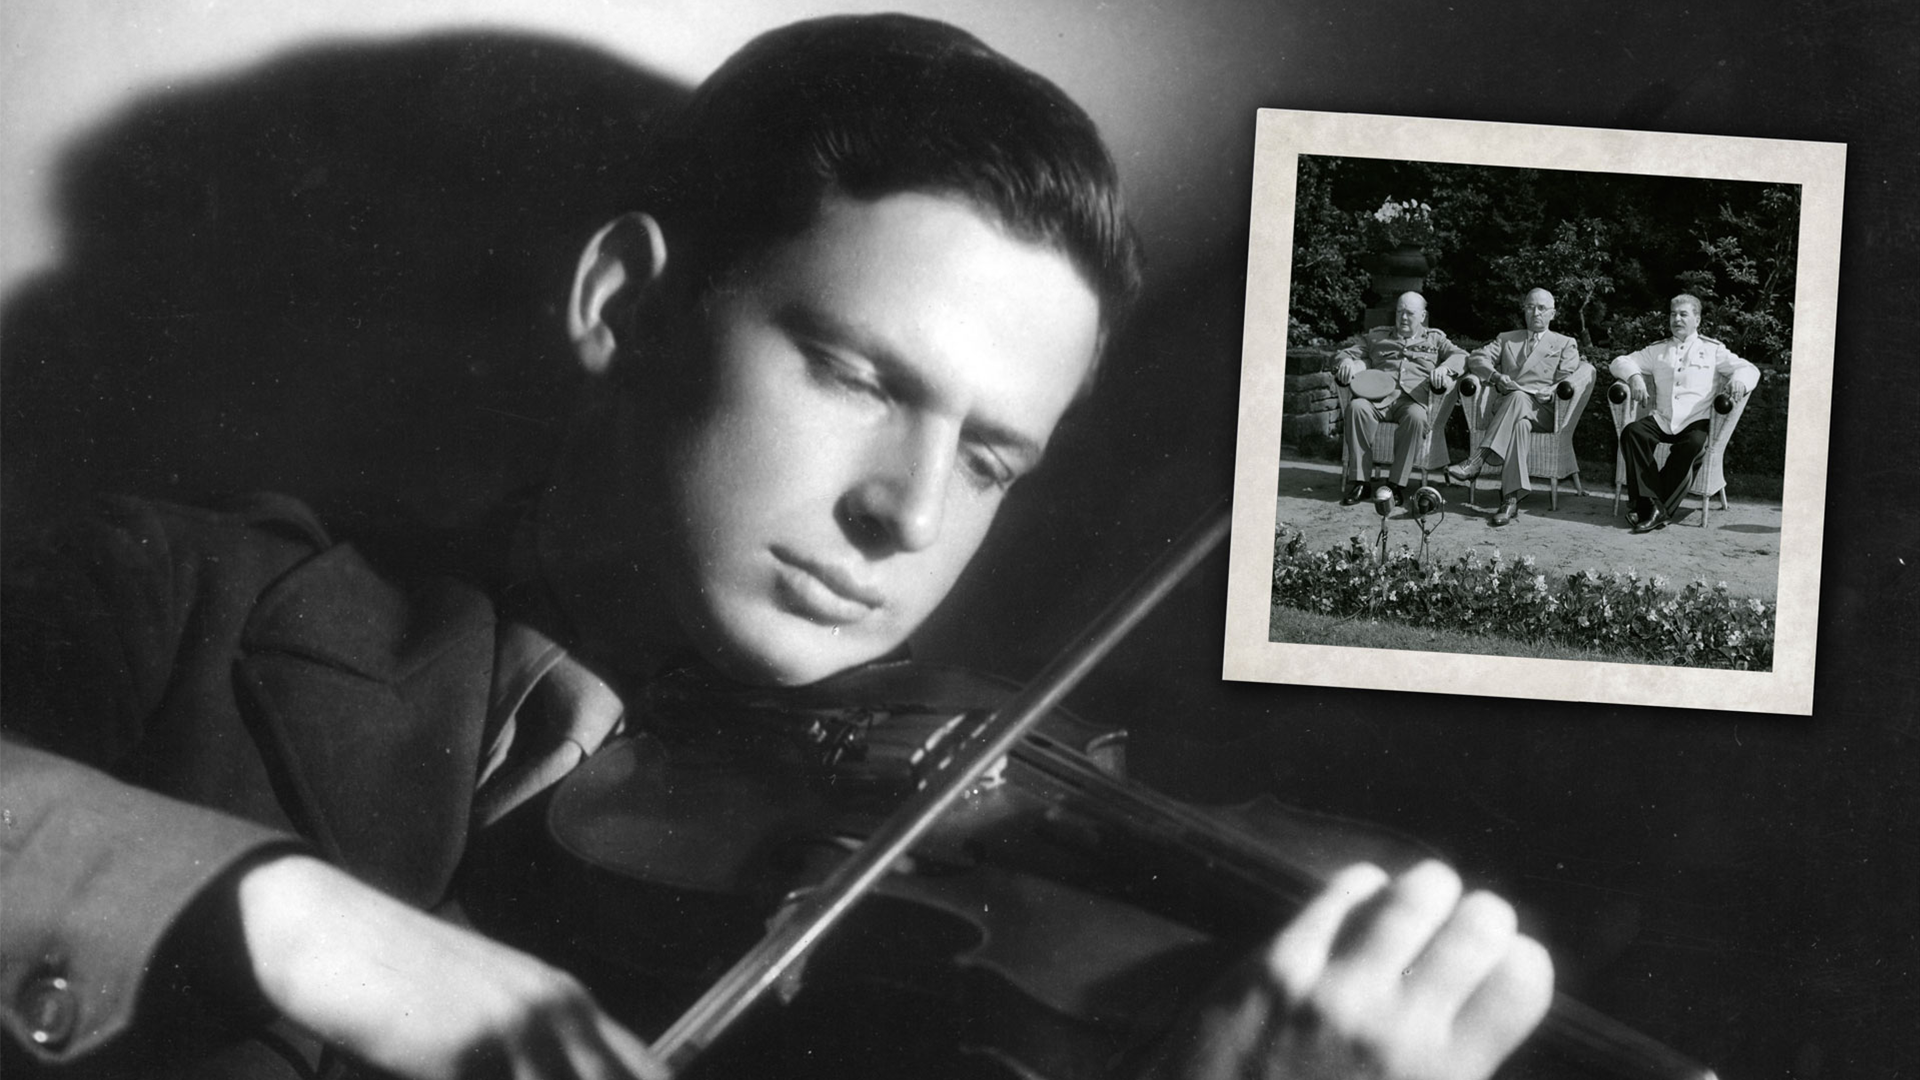 Still image from the film The Rifleman's Violin